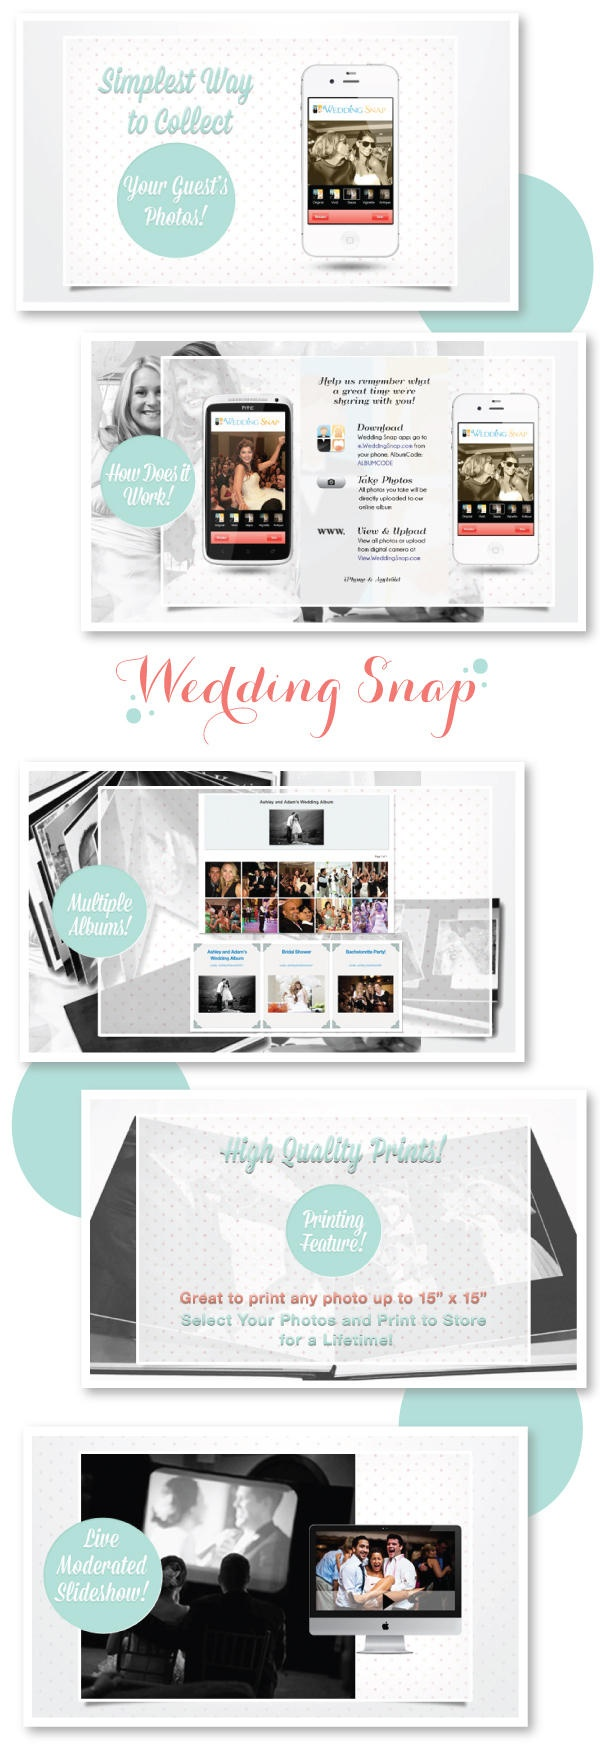 a great app that allows all of your guests to upload images from your big day into a WeddingSnap live album. http://www.WeddingSnap.com/ Plus Wedding Snap's Christian Louboutin giveaway! See it here:http://www.stylemepretty.com/2012/09/18/photo-sharing-with-wedding-snap-a-giveaway/